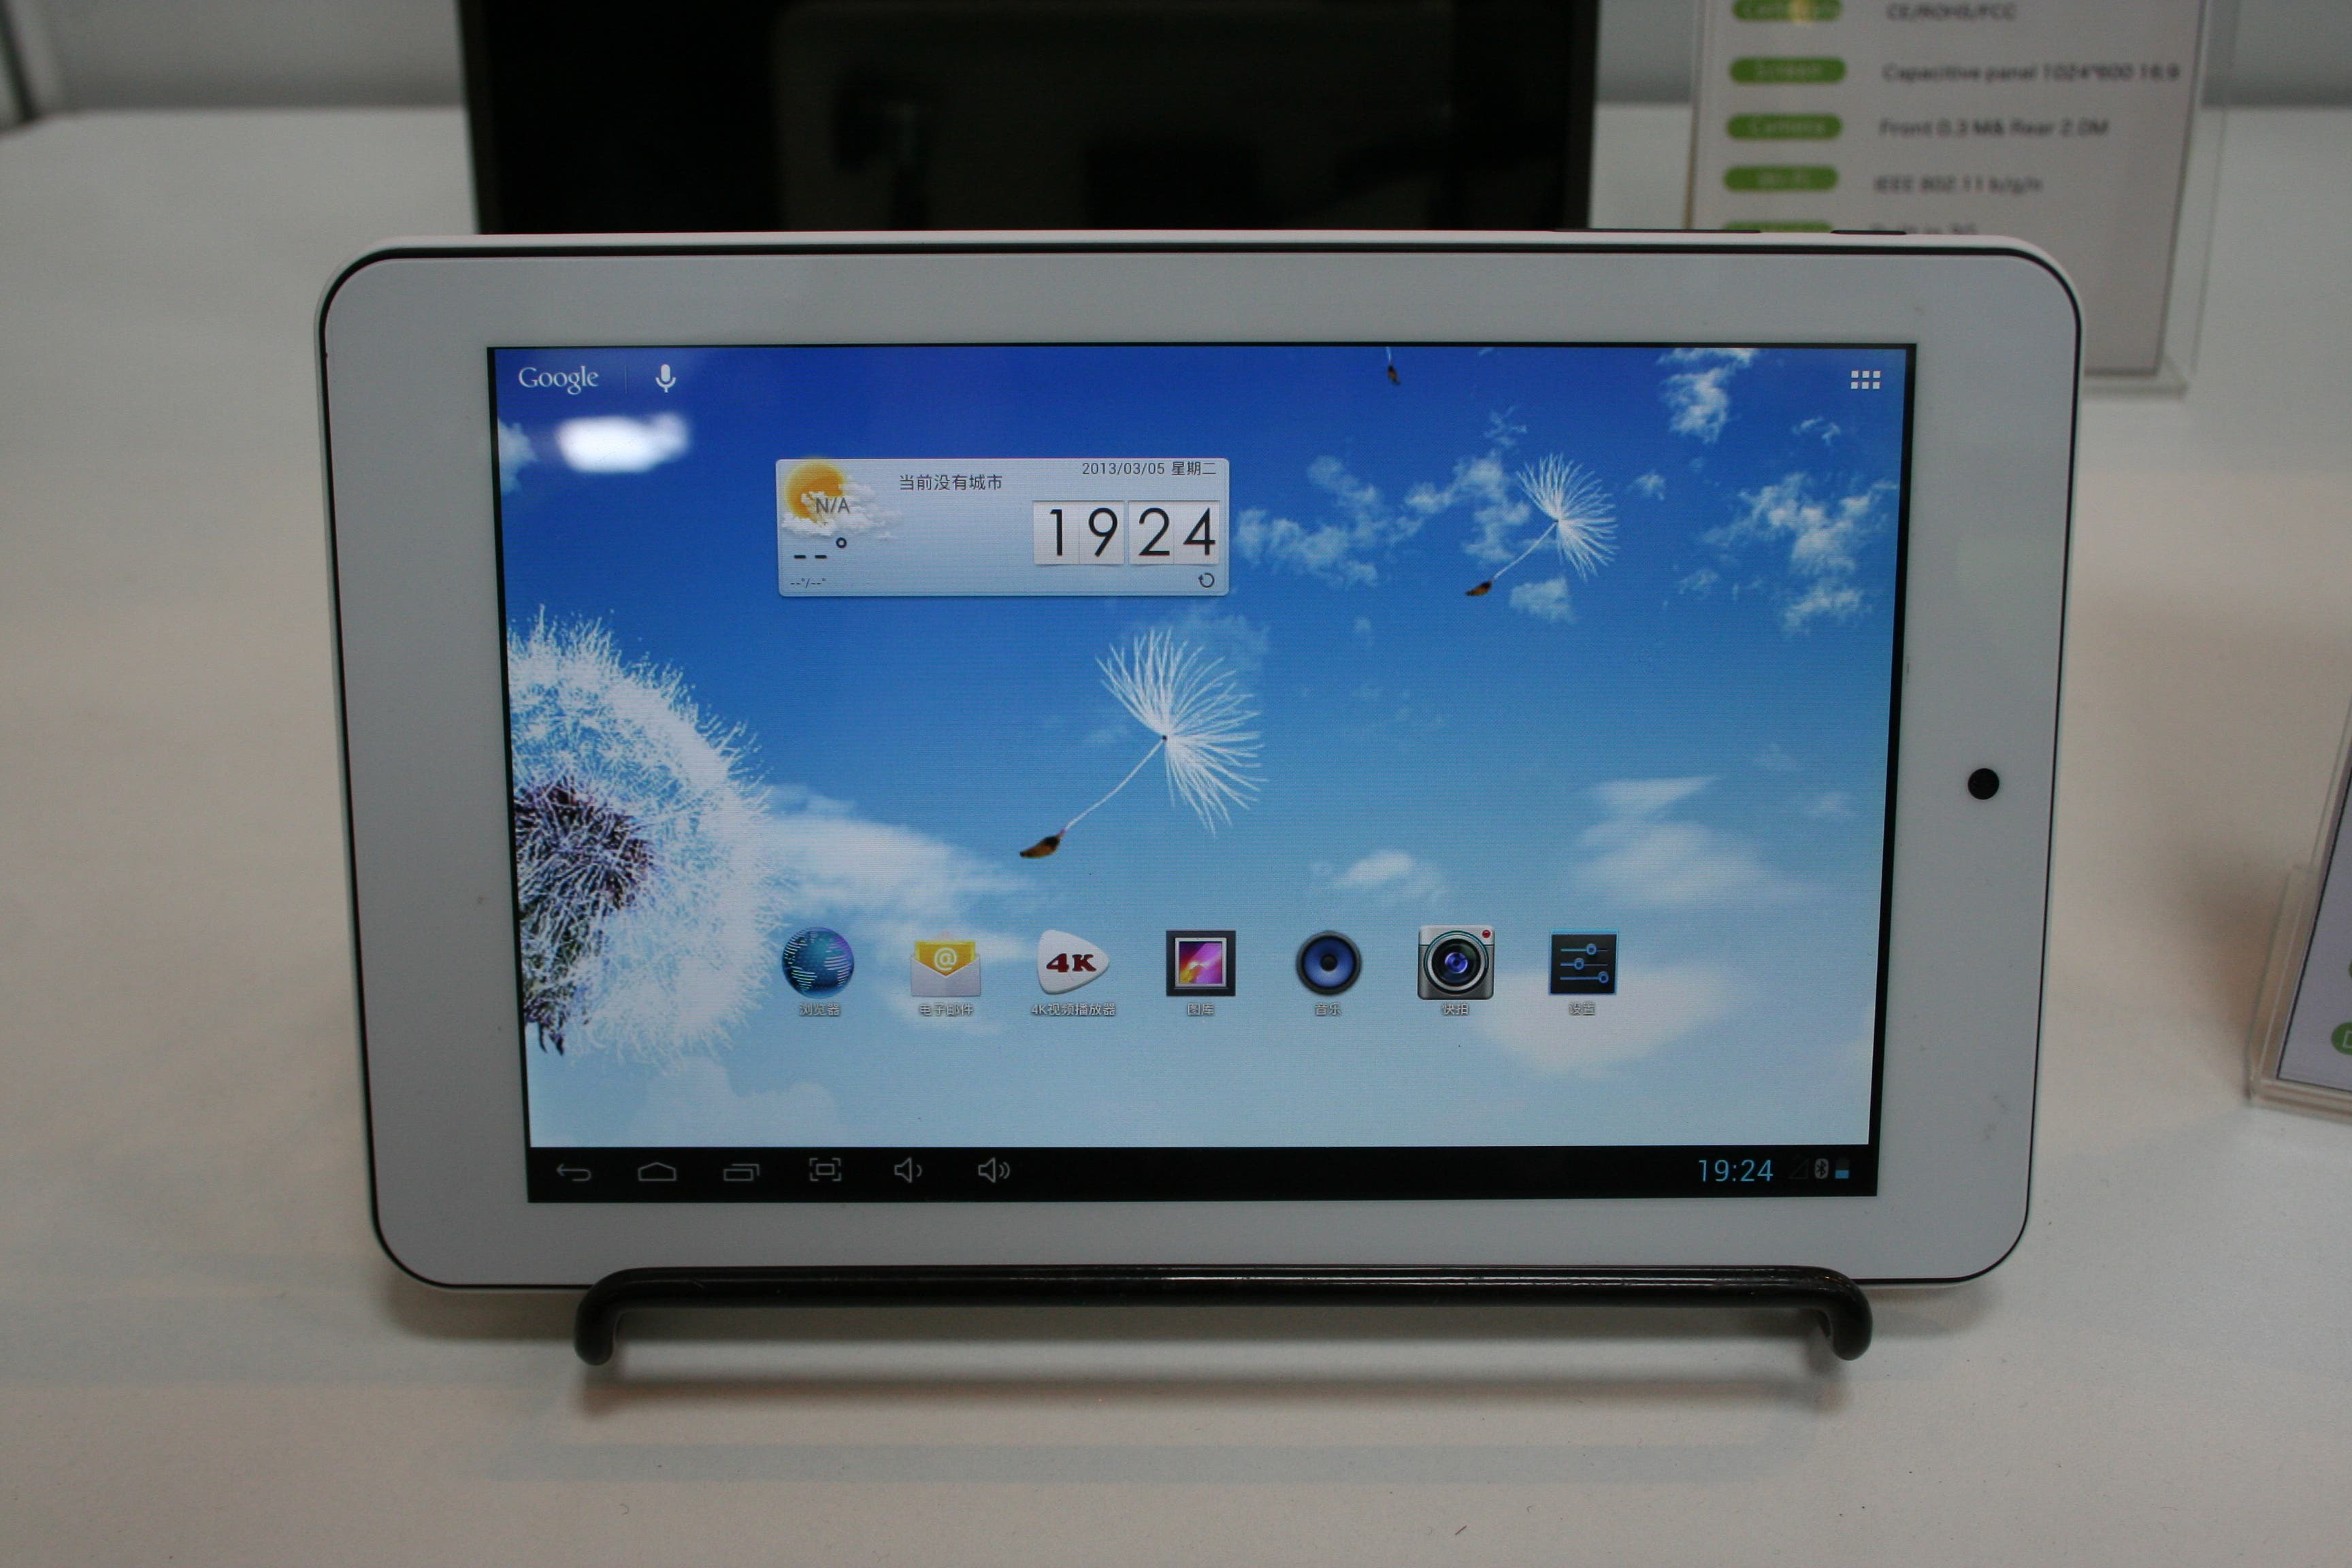 CeBIT: Einsteiger-Tablets Ployer Momo17 Quad & Flastar TP706 im Hands-on